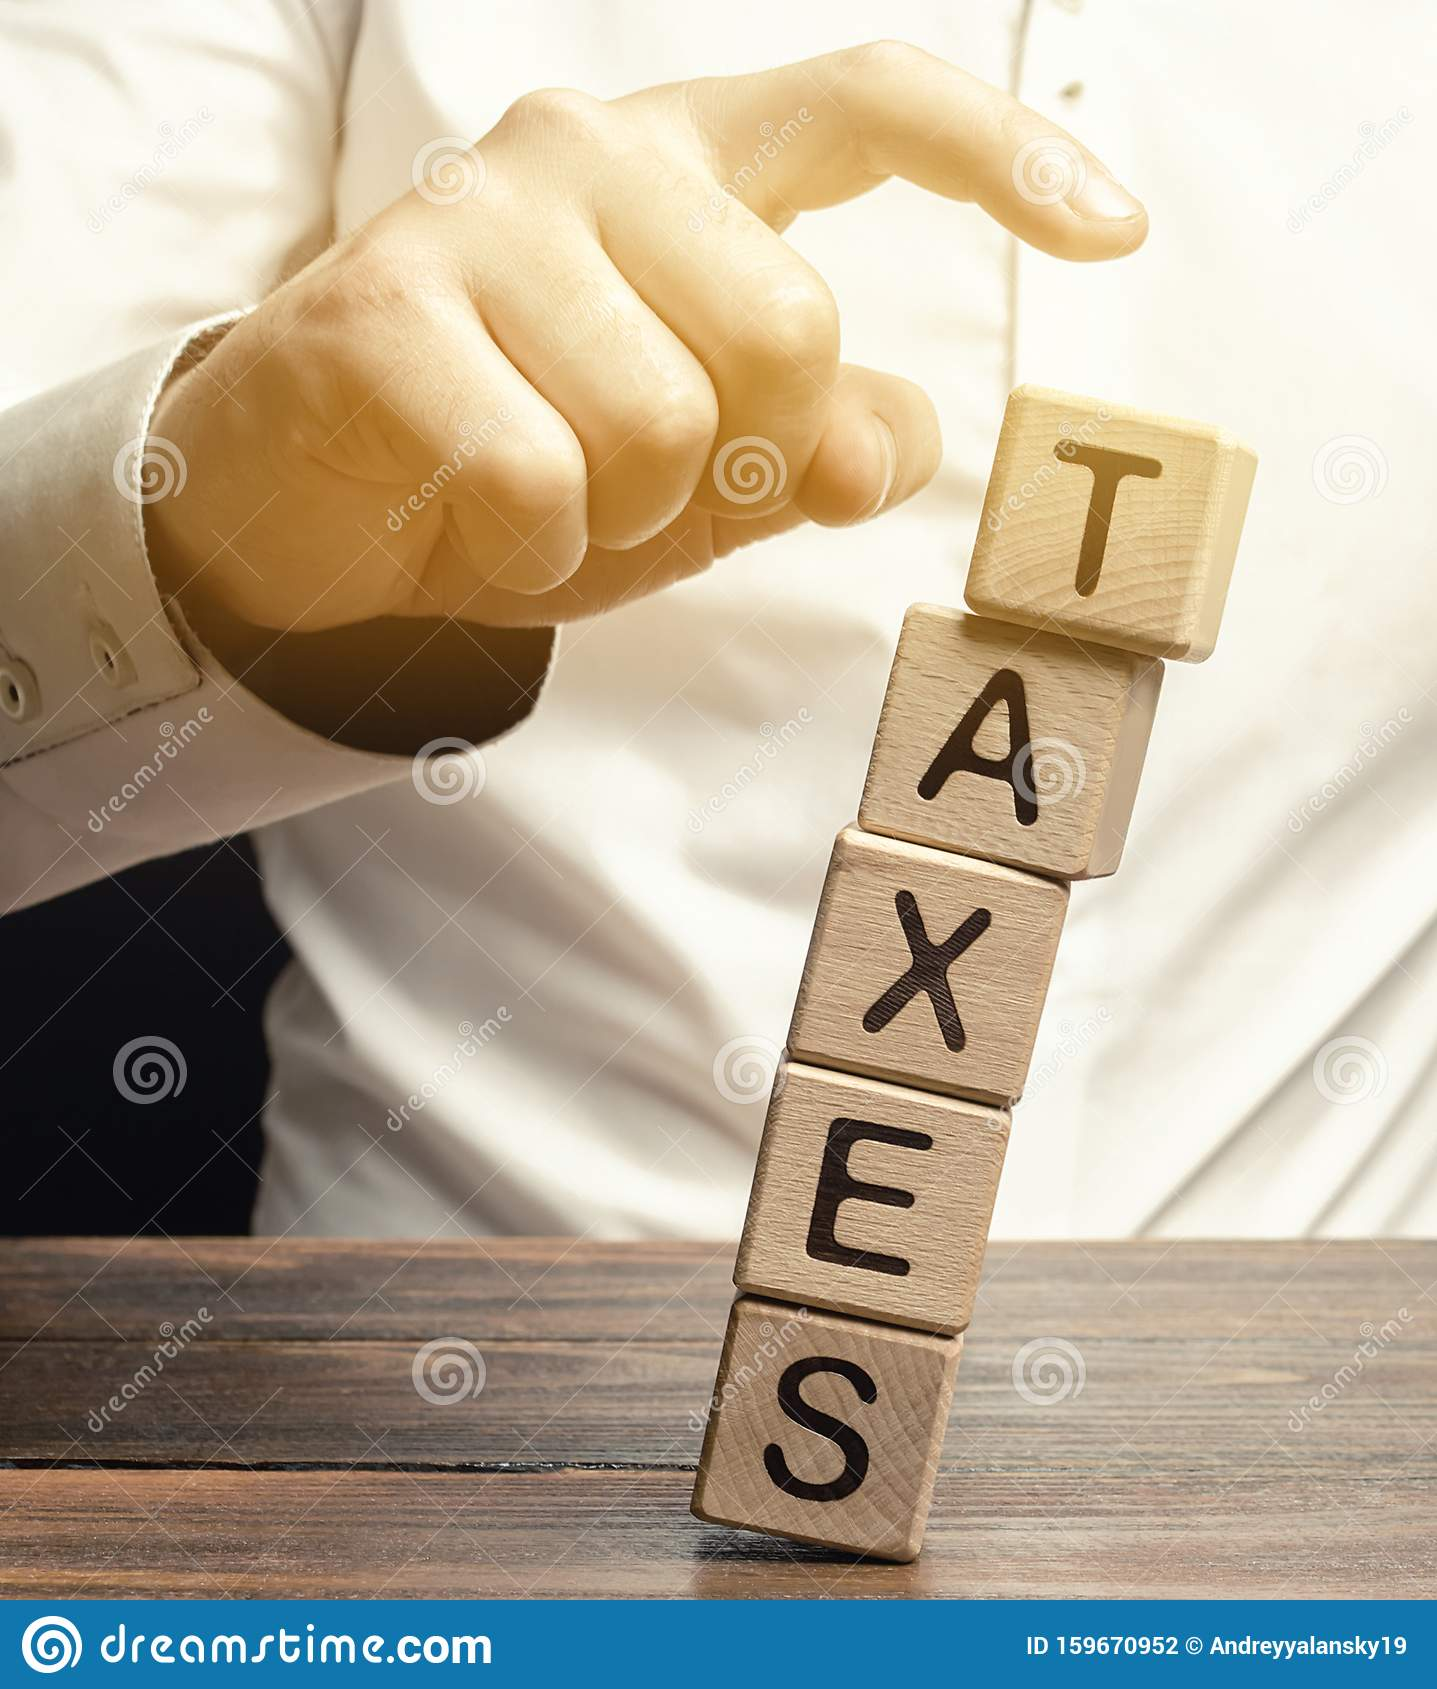 Businessman Removes Wooden Blocks With The Word Taxes. The Concept Of Tax Payment For